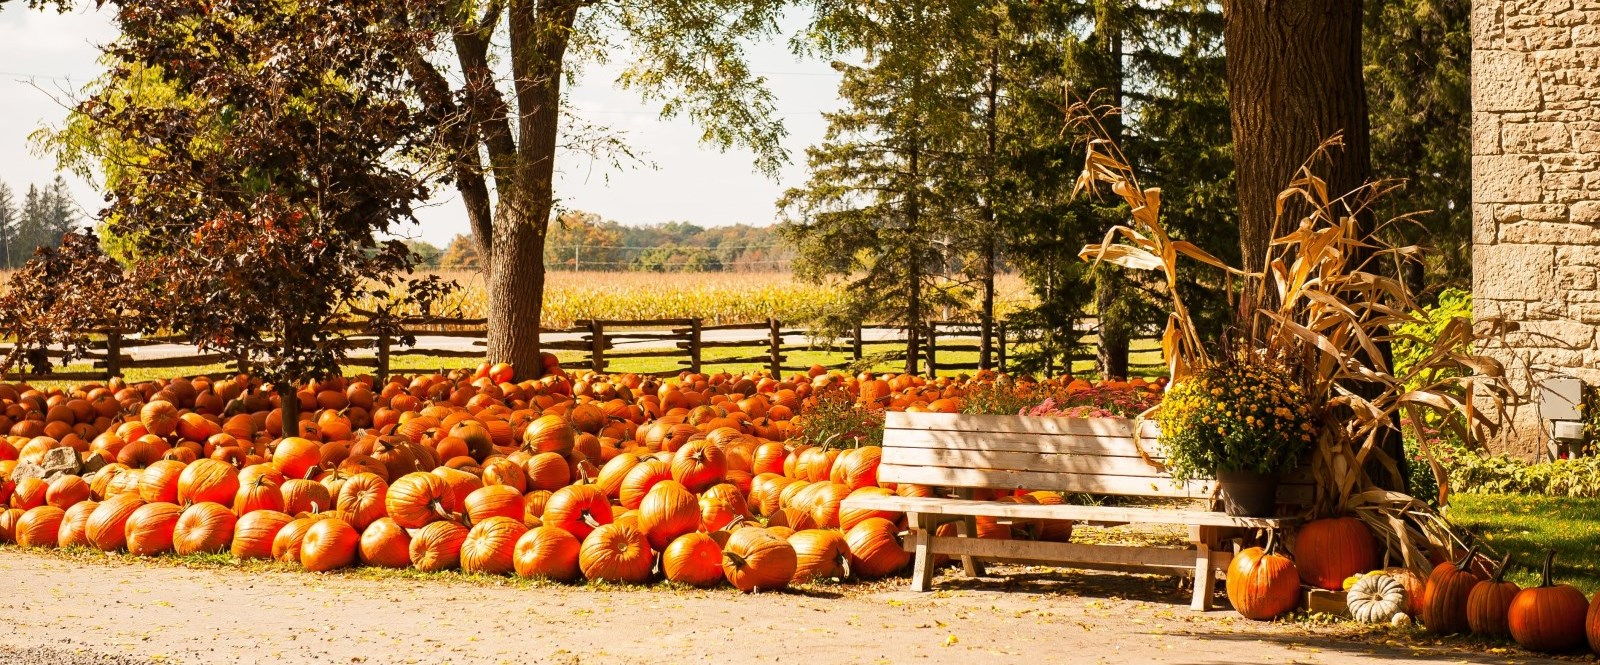 a pile of pumpkins on a farm house front lawn